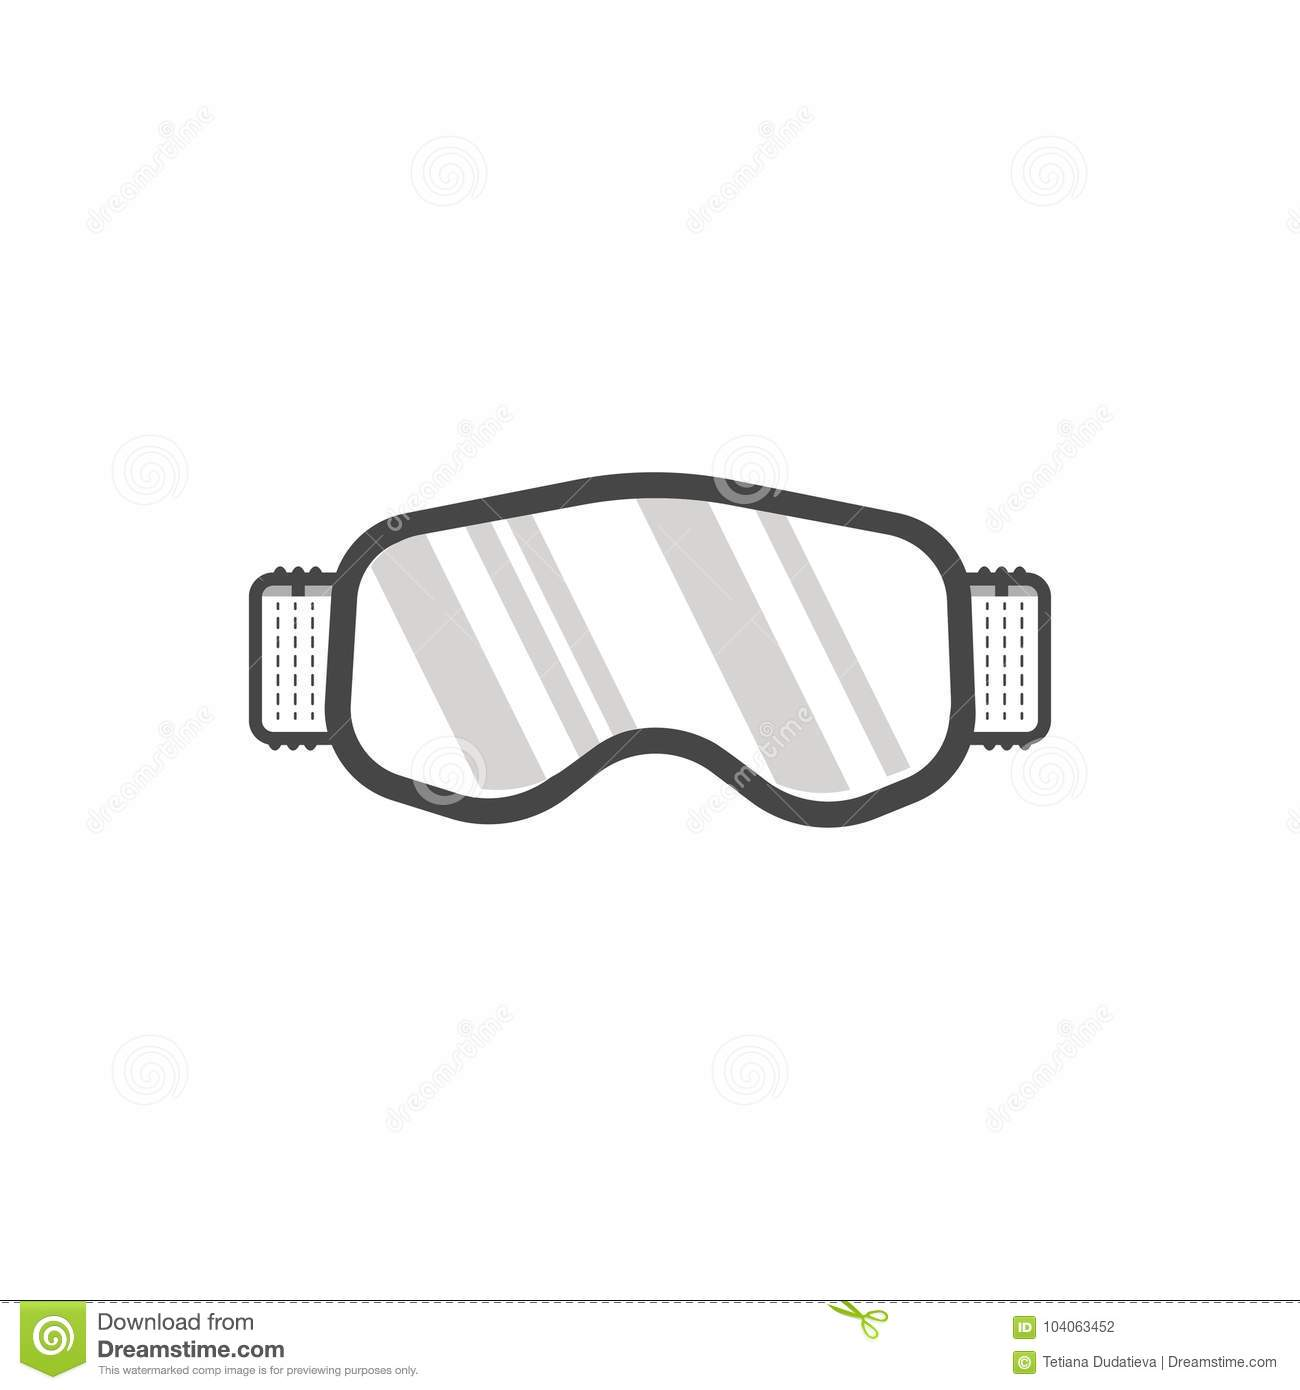 5346b694d71 Winter sport icon of Snowboard or ski goggles. Modern accessories isolated  on white background in flat style design. Elements for ski resort picture